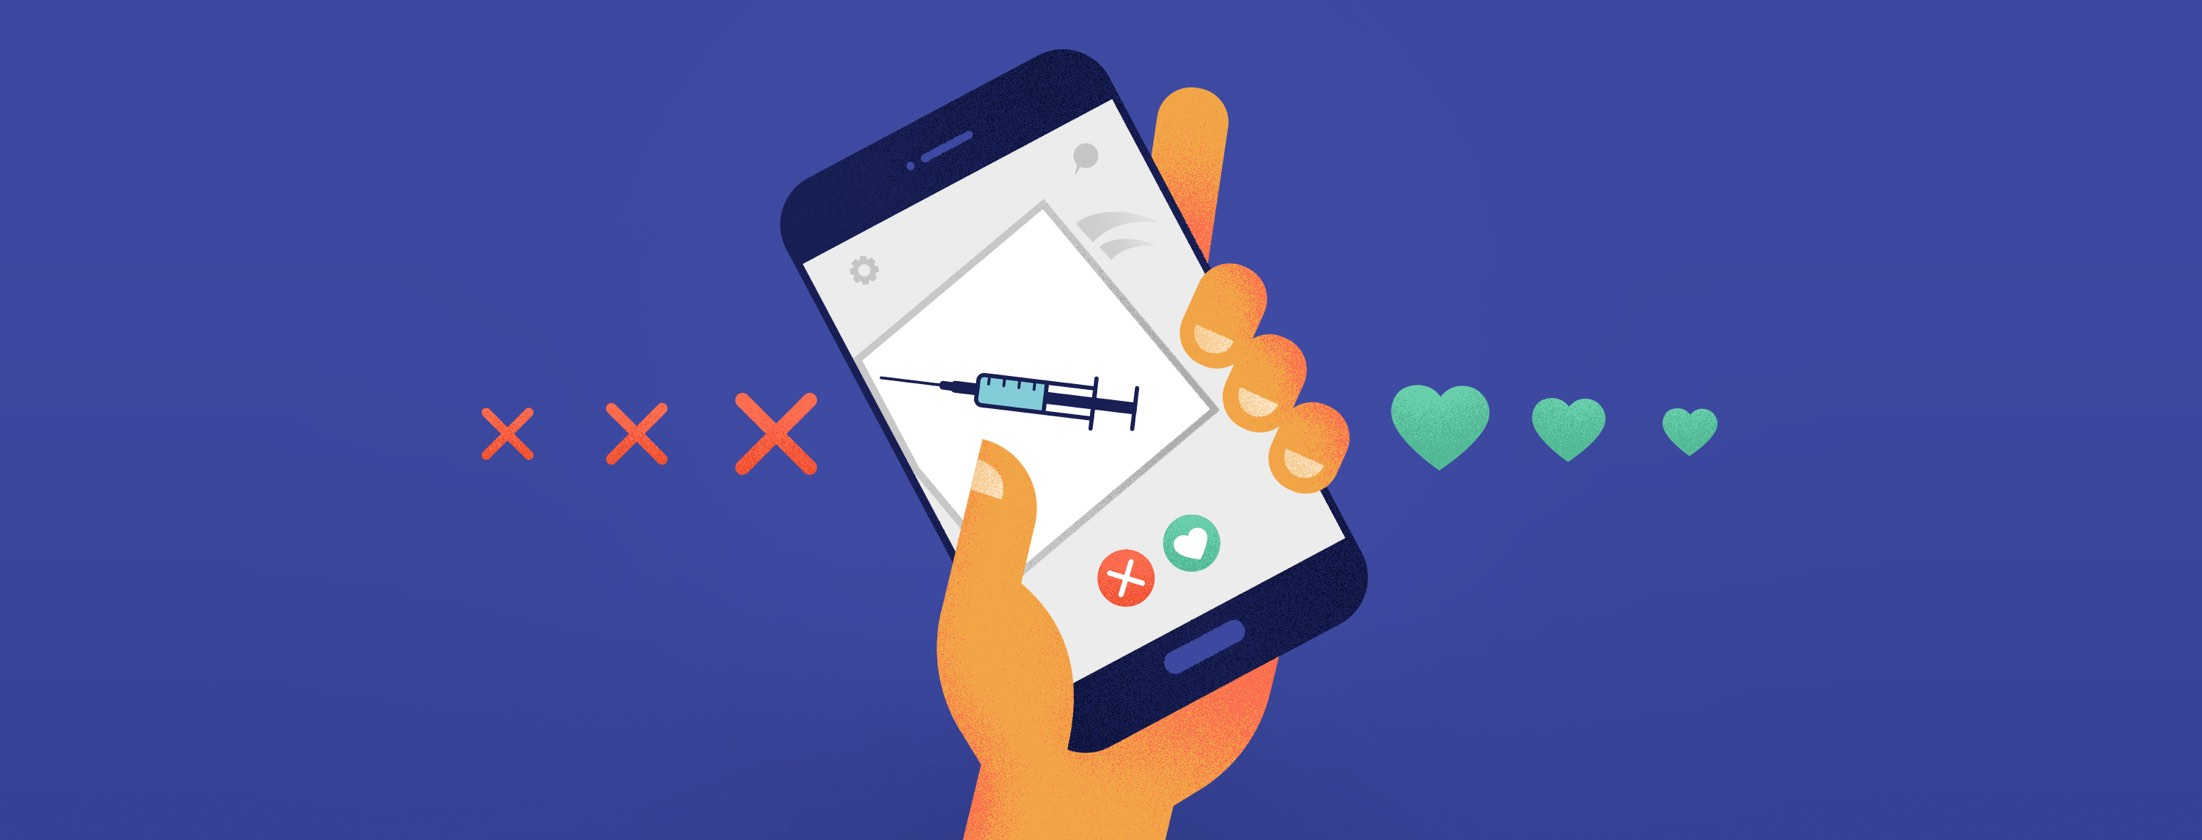 Hand swiping left of tinder dumping a picture of a botox needle